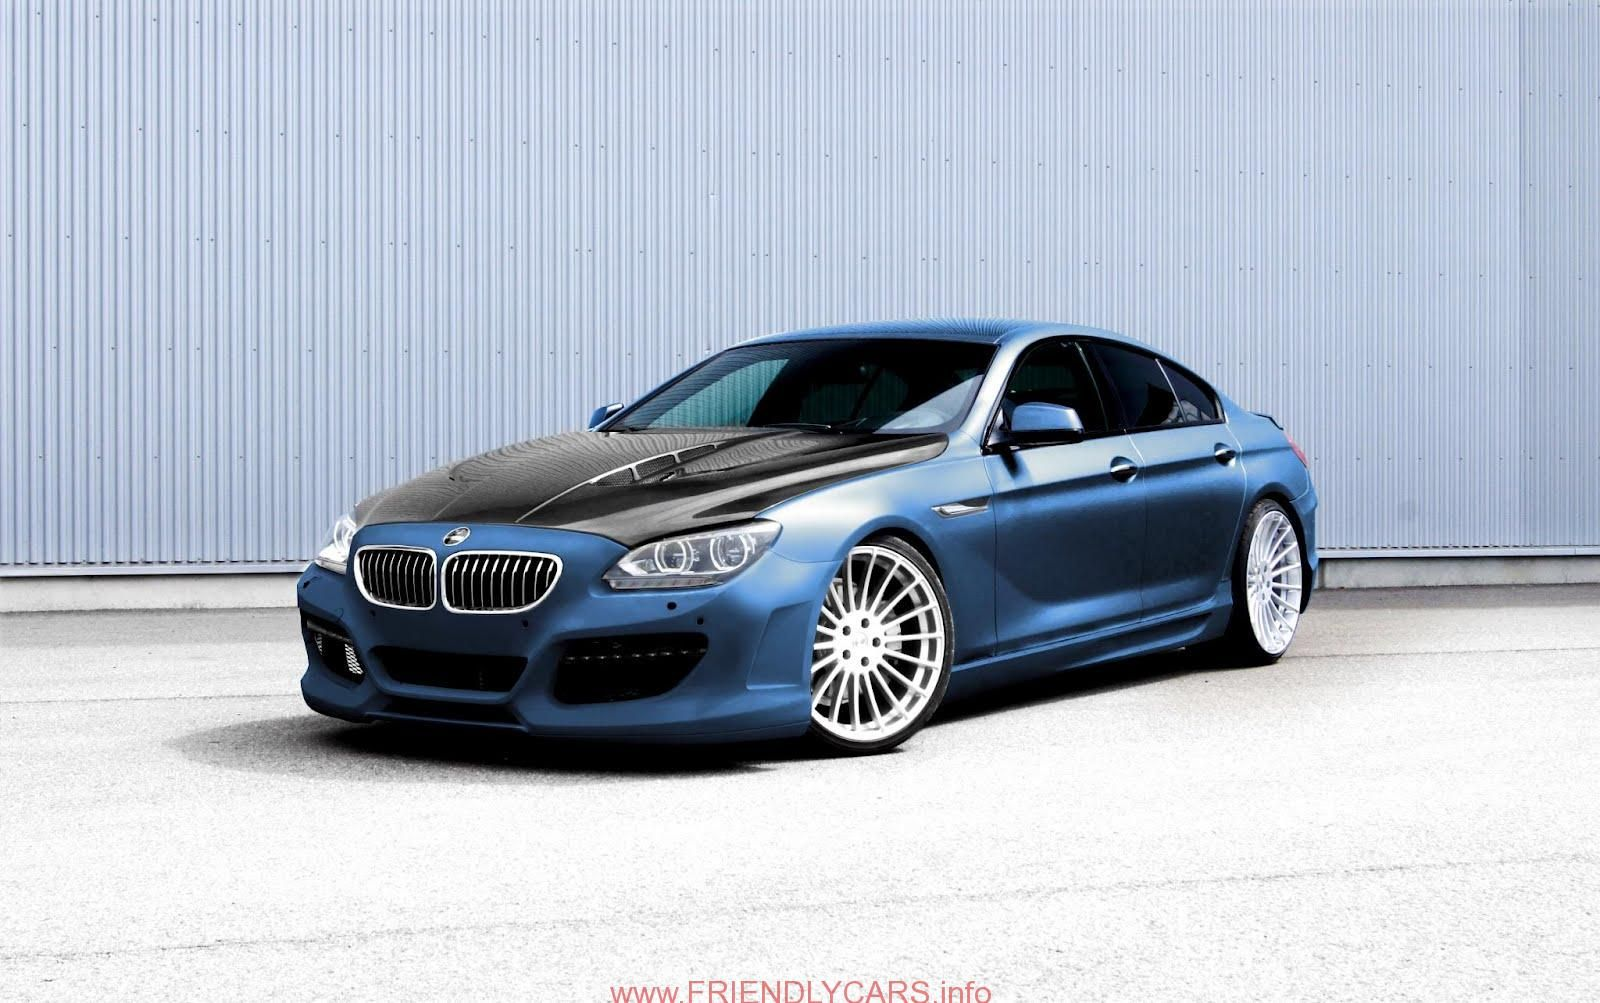 Awesome Bmw 2014 4 Door 6 Series Car Images Hd 2013